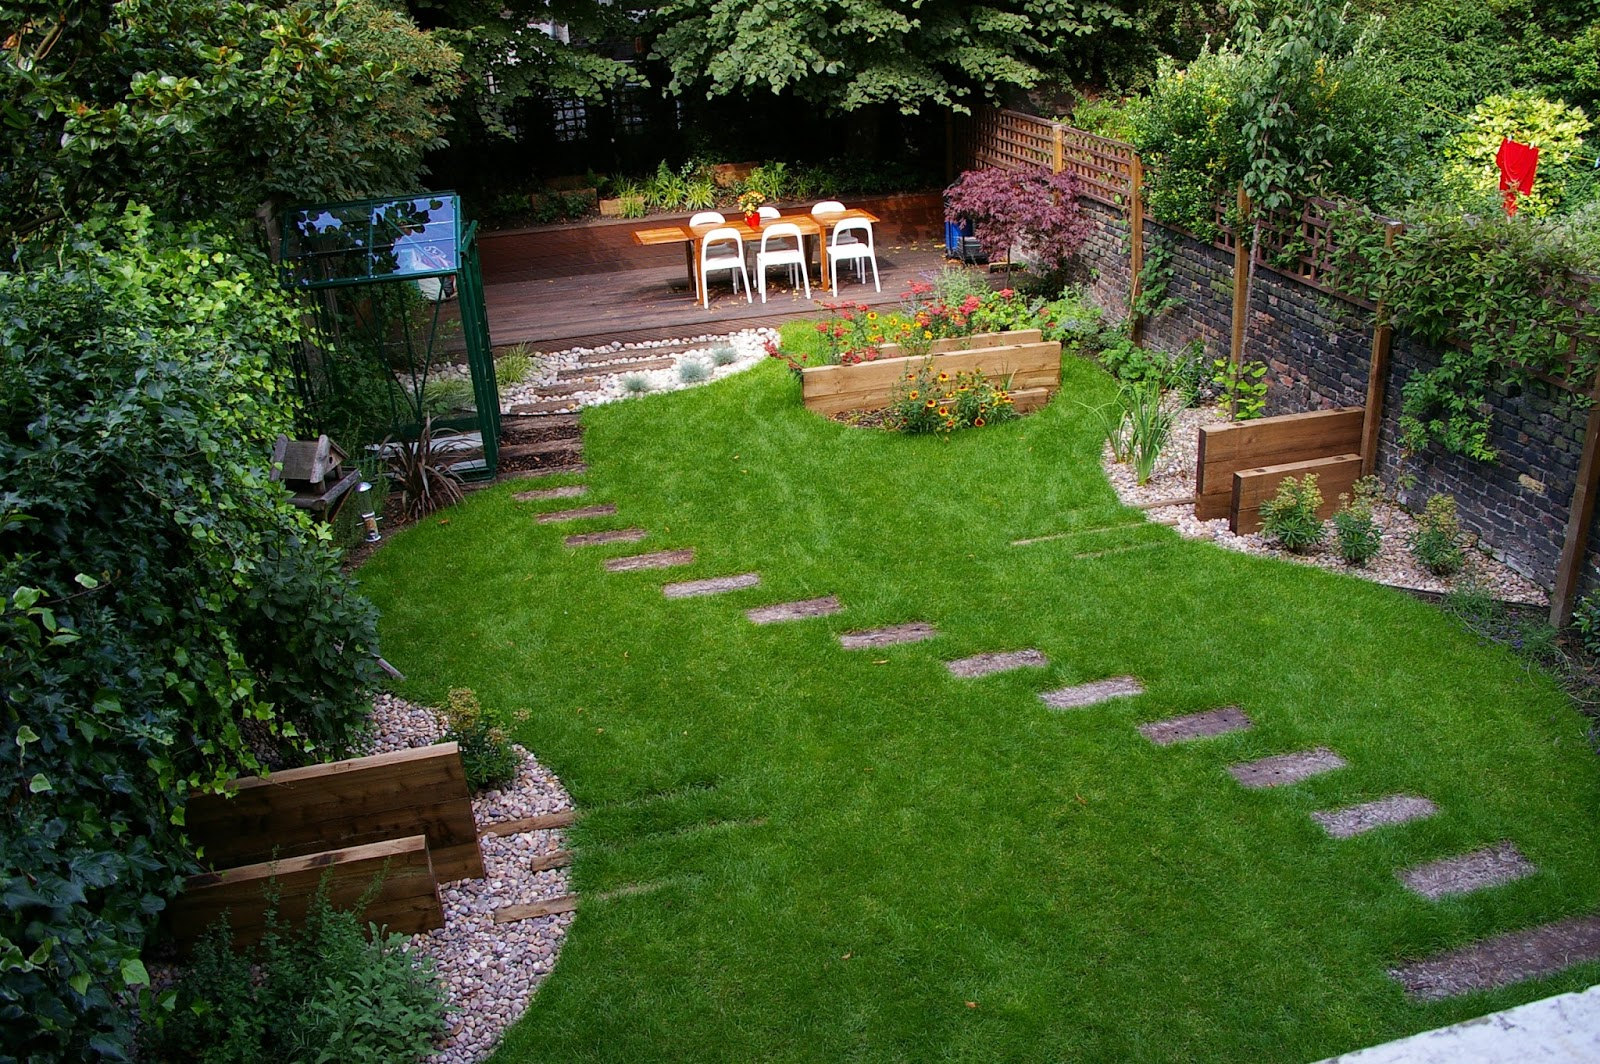 Small Landscaping Ideas for Backyard Designs for Privacy on Backyard Landscaping Ideas On A Budget  id=57774